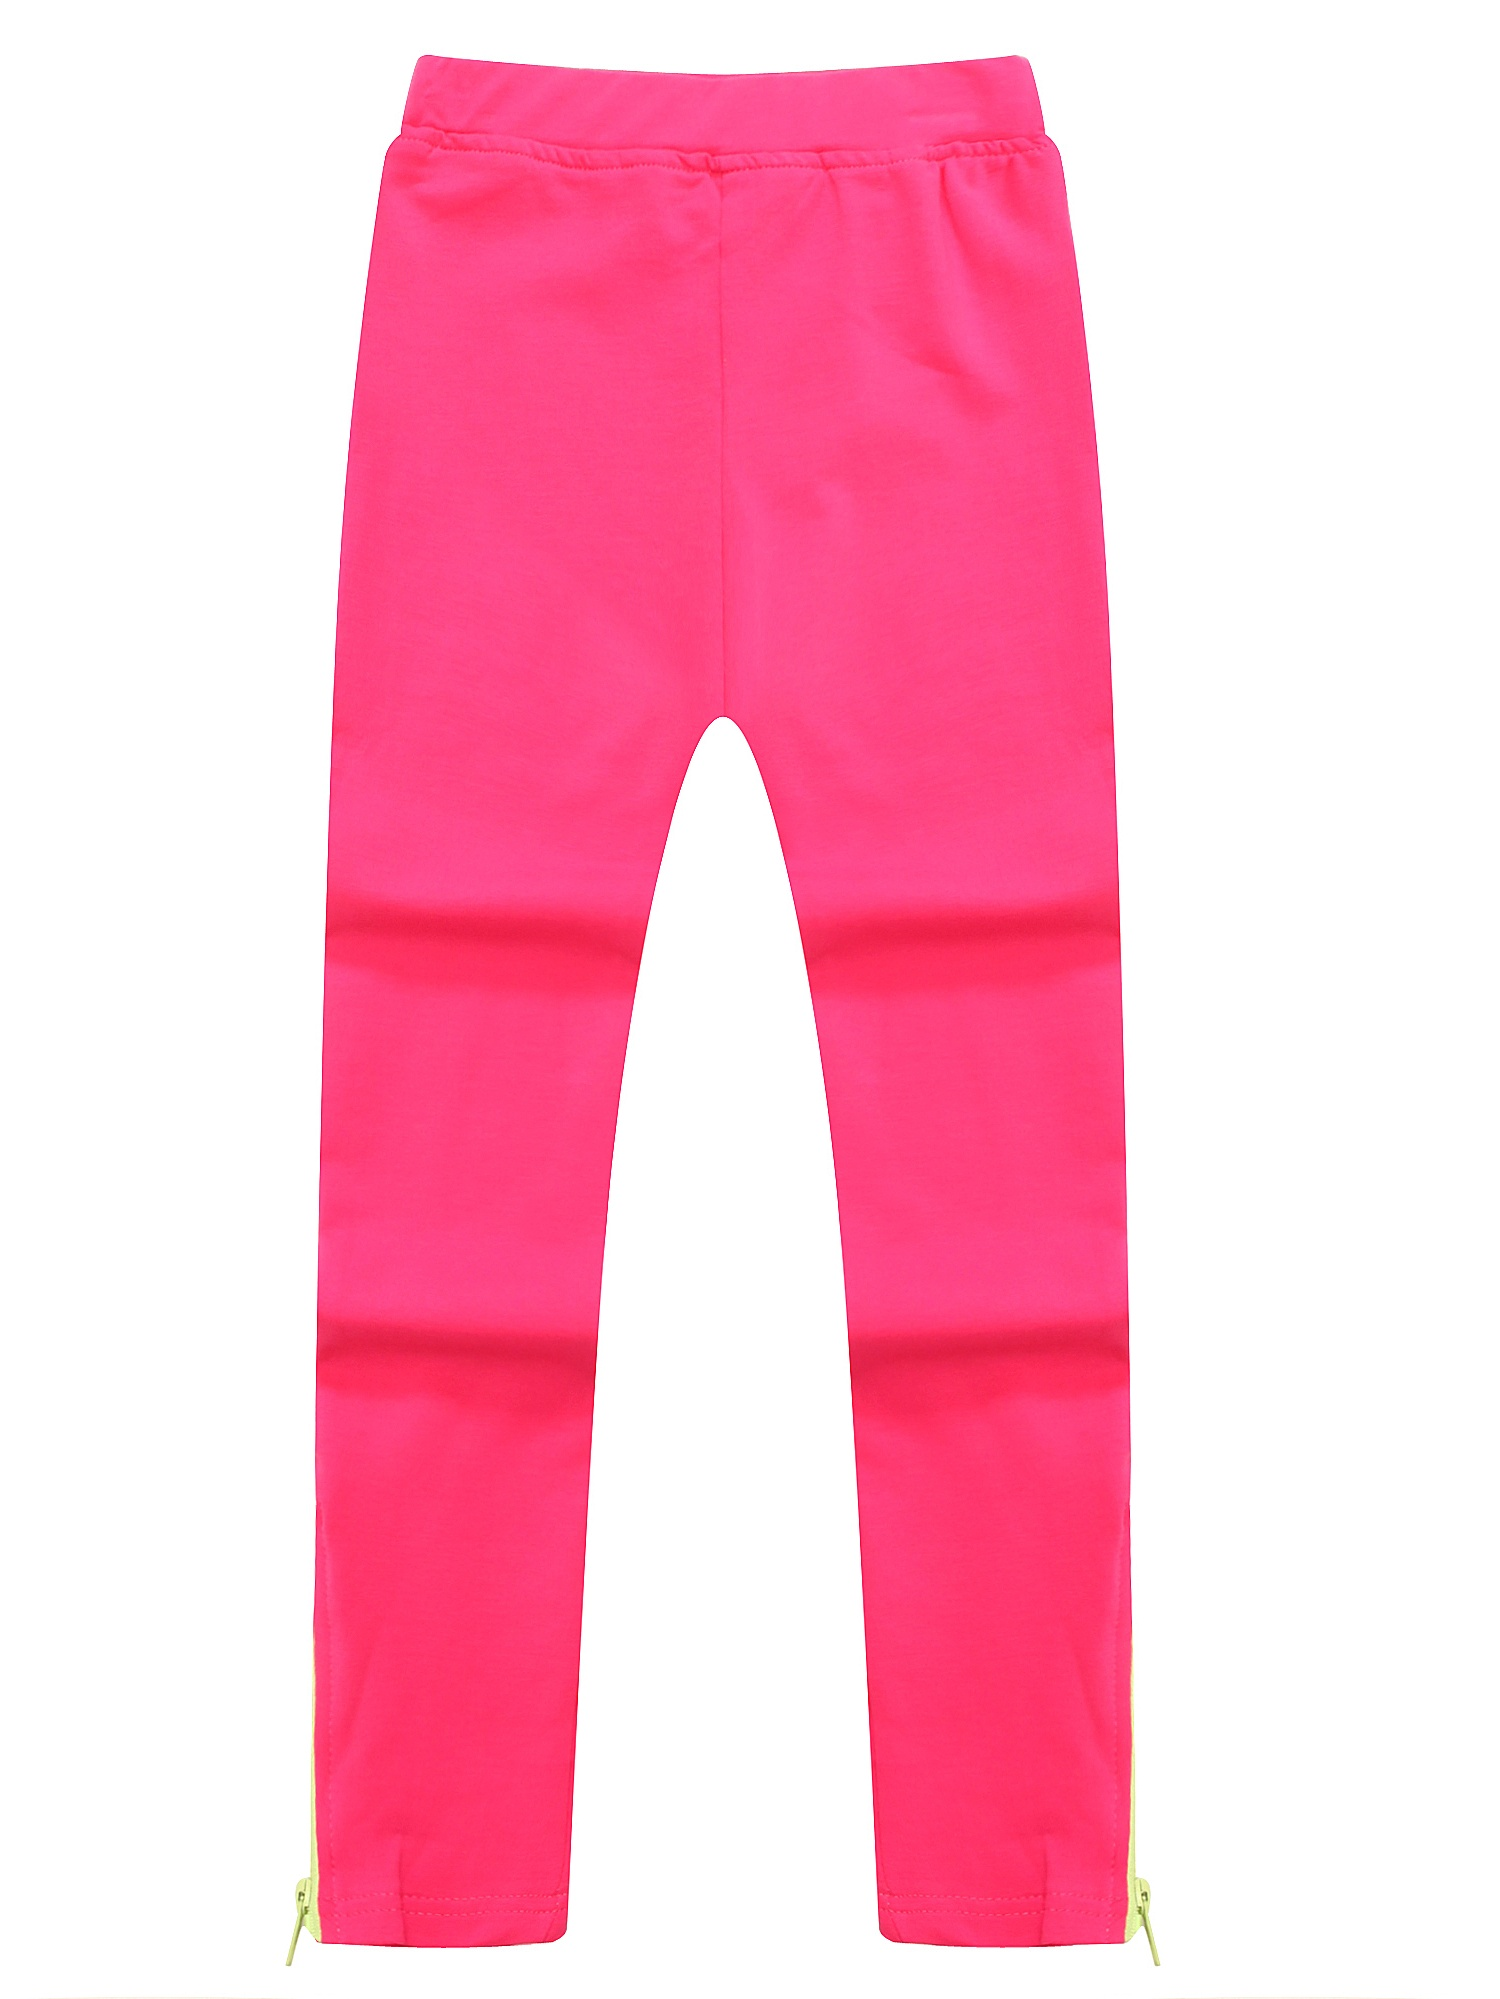 Richie House Girls' Solid Colored Knitting Pants with Zipper at Hem RH1520